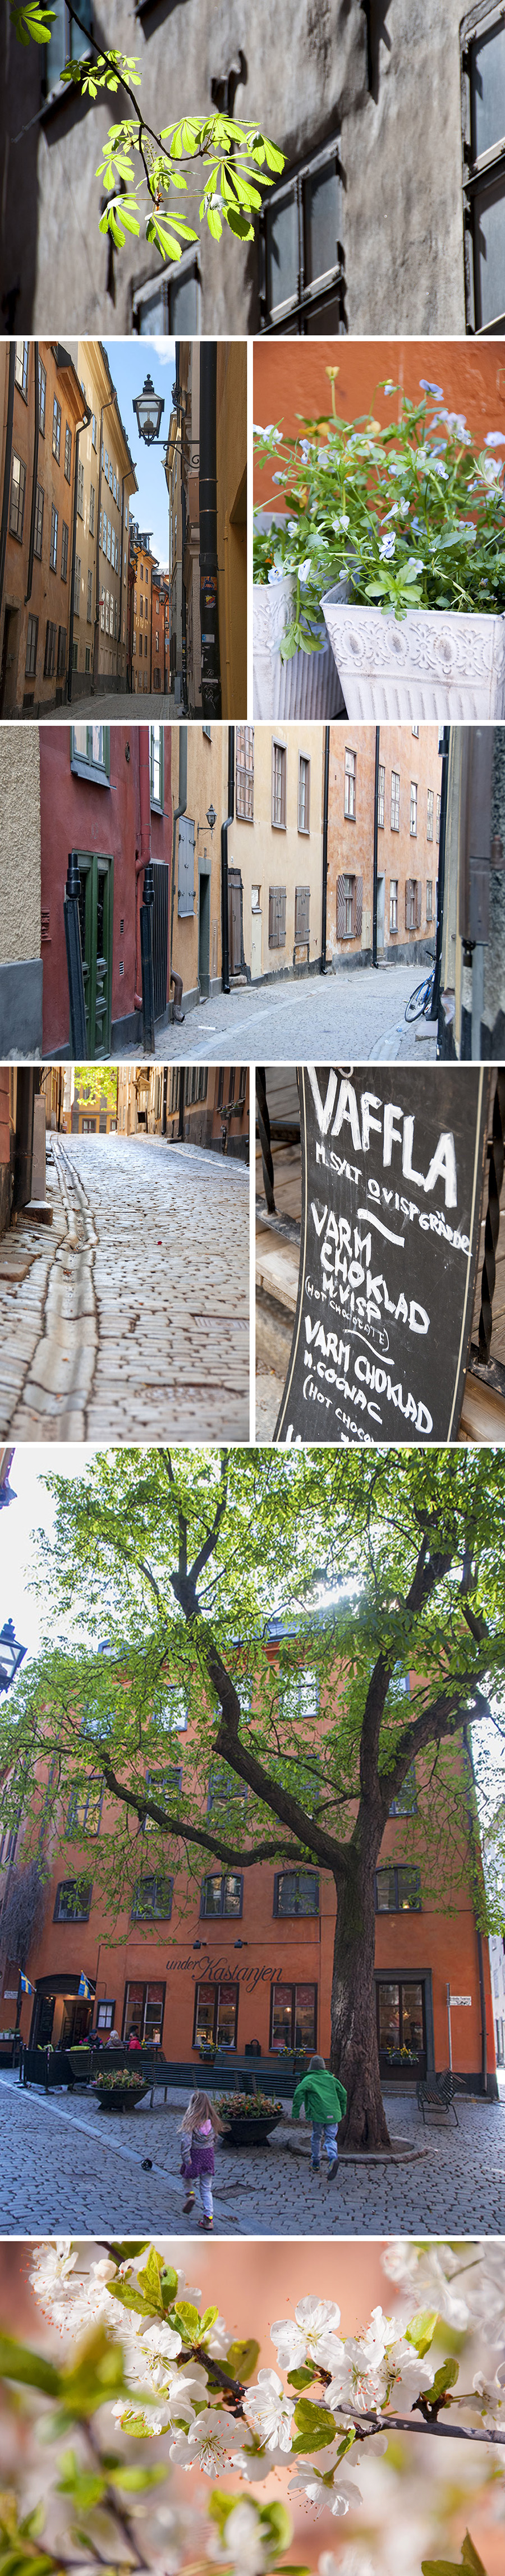 gamla stan collage